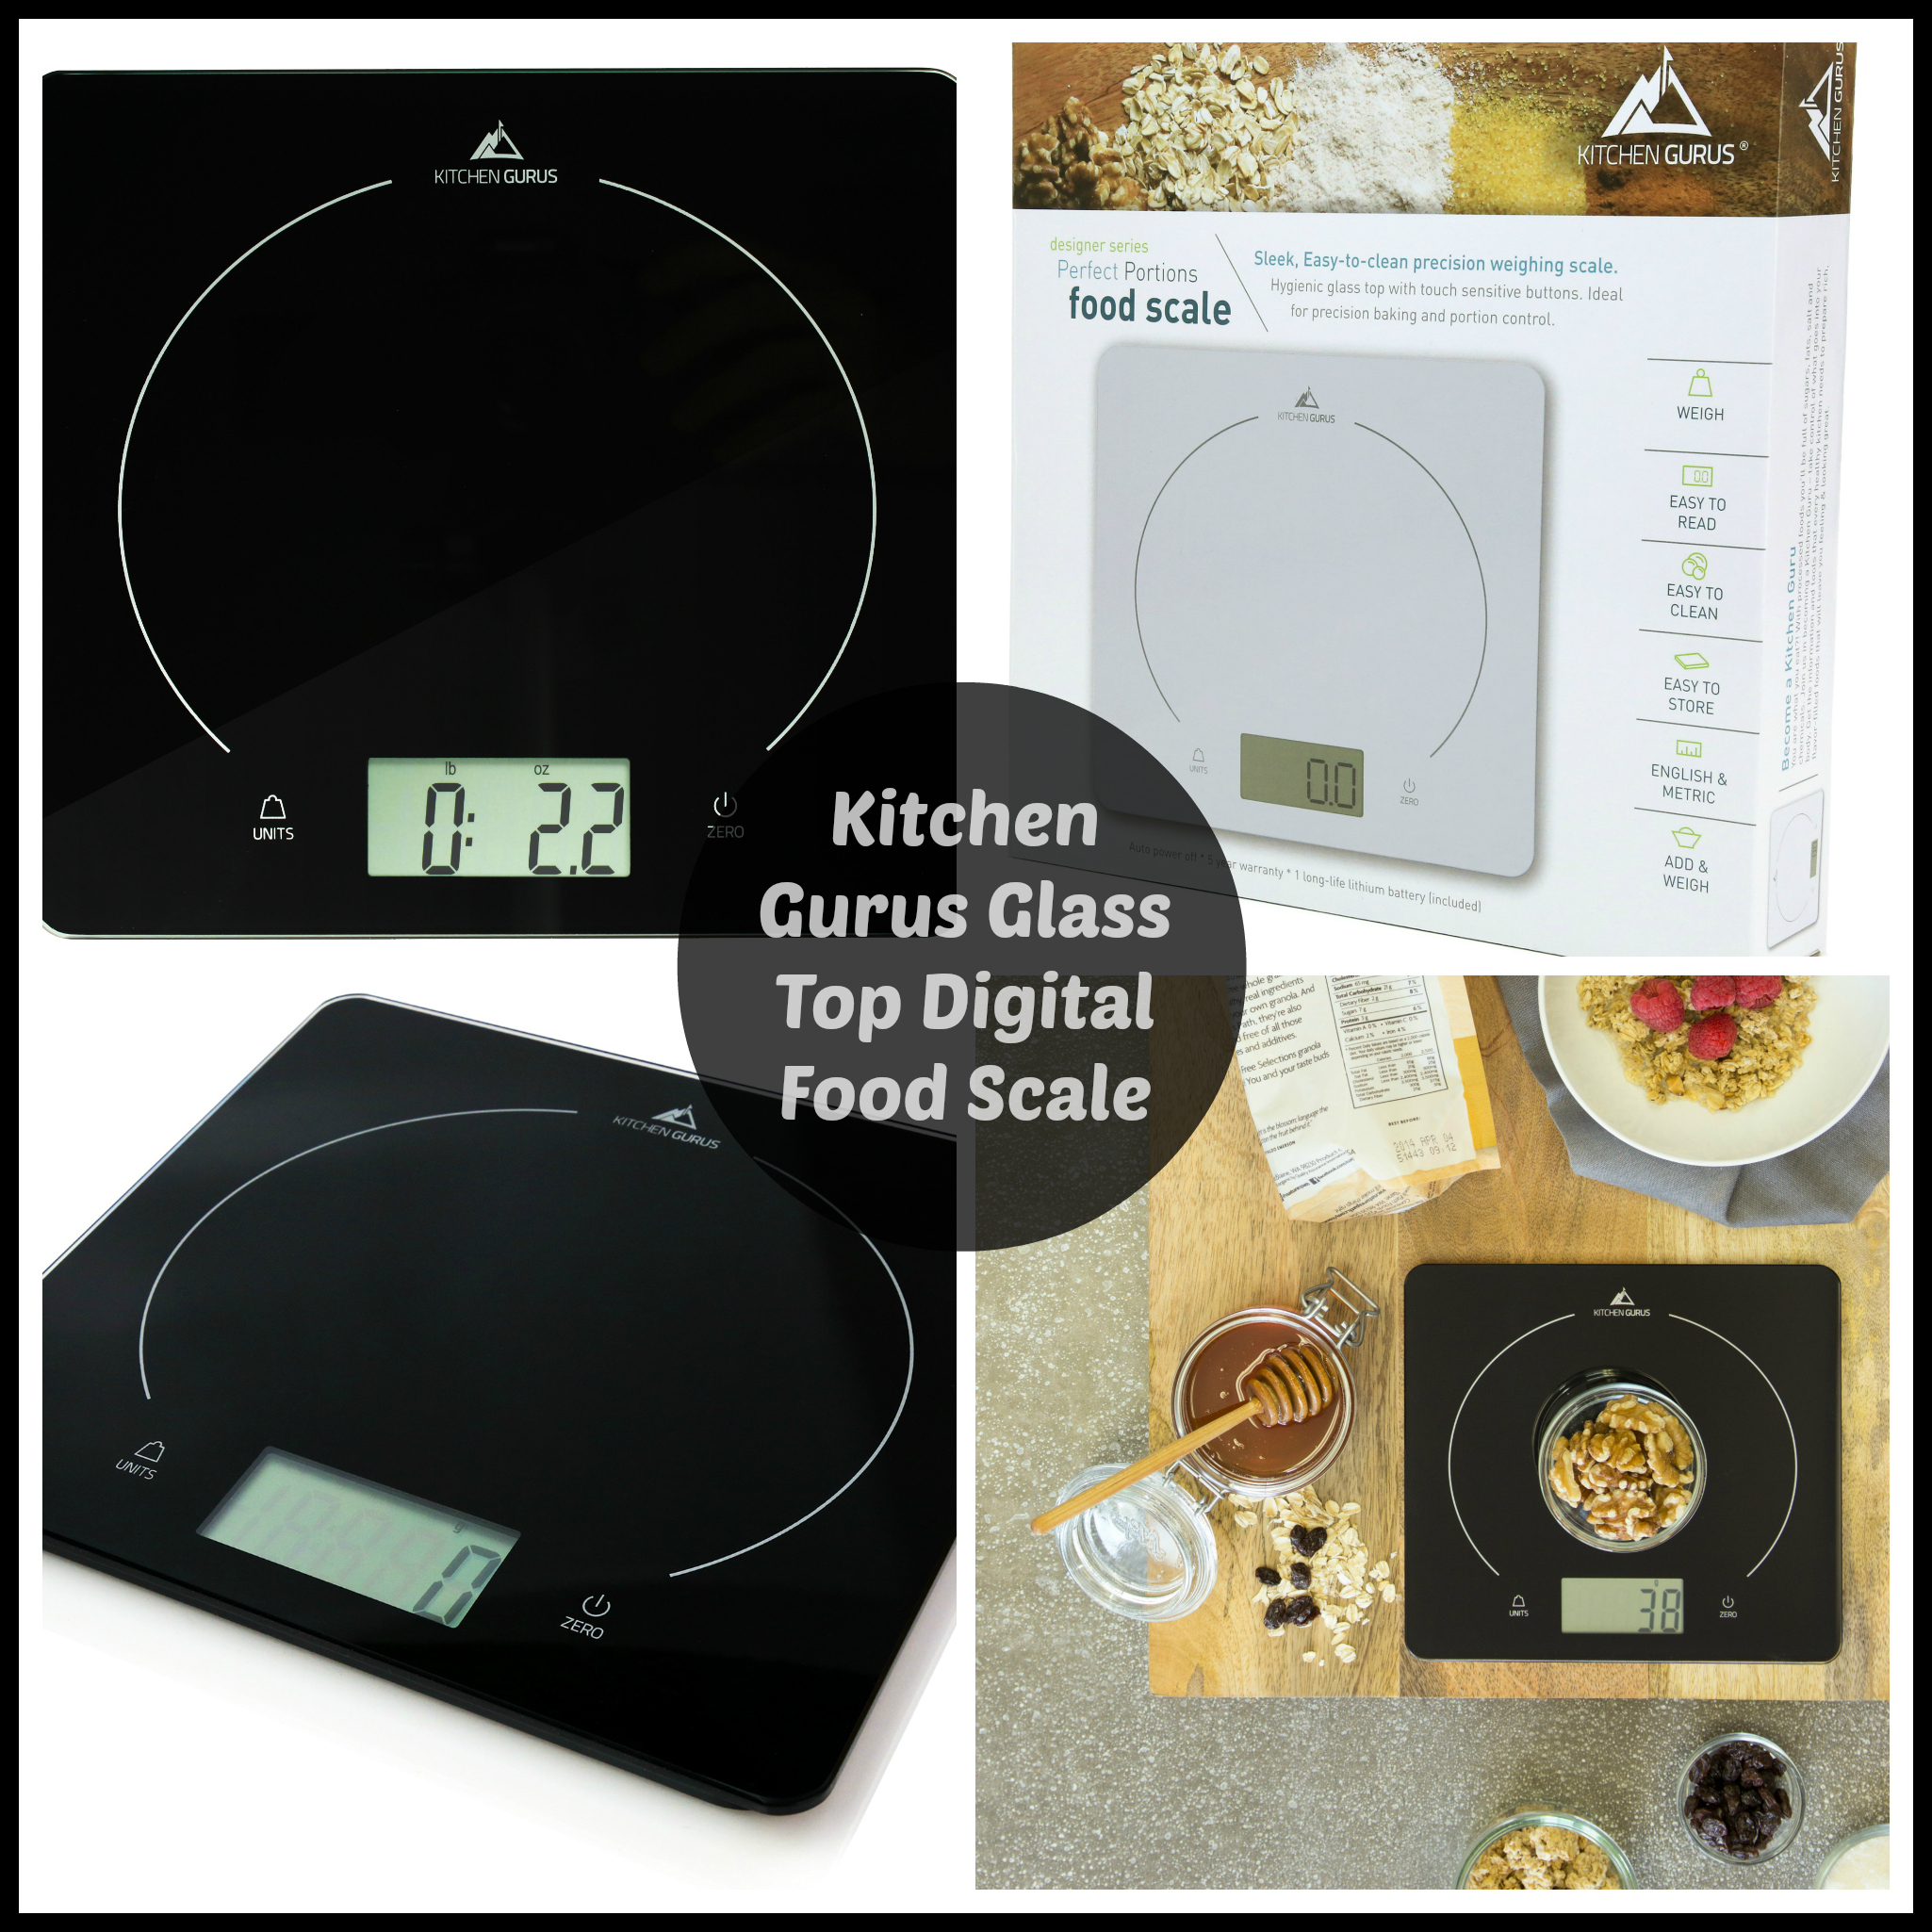 kitchen gurus glass top digital food scale the stuff of success